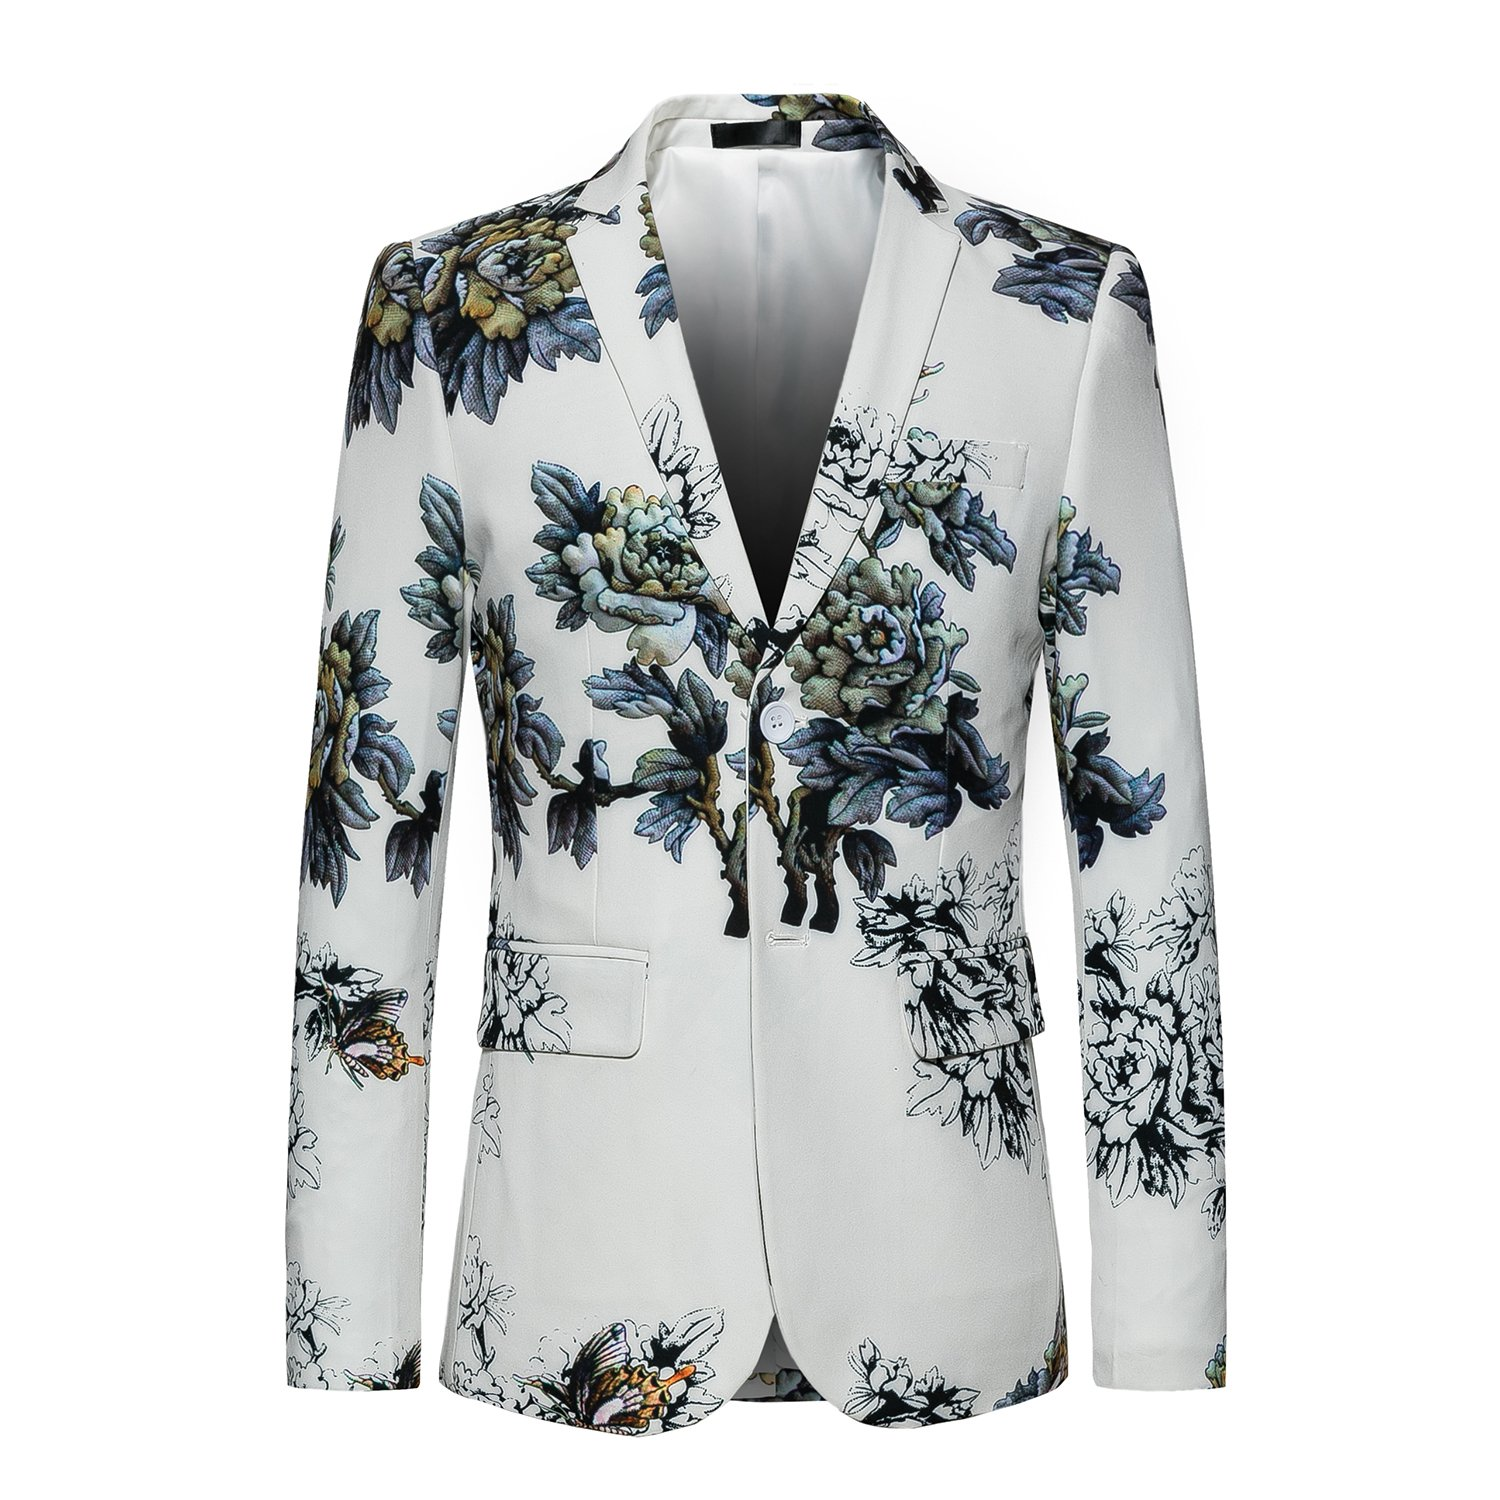 UNINUKOO Mens White Floral Elegant Sport Coat for Casual Occasion